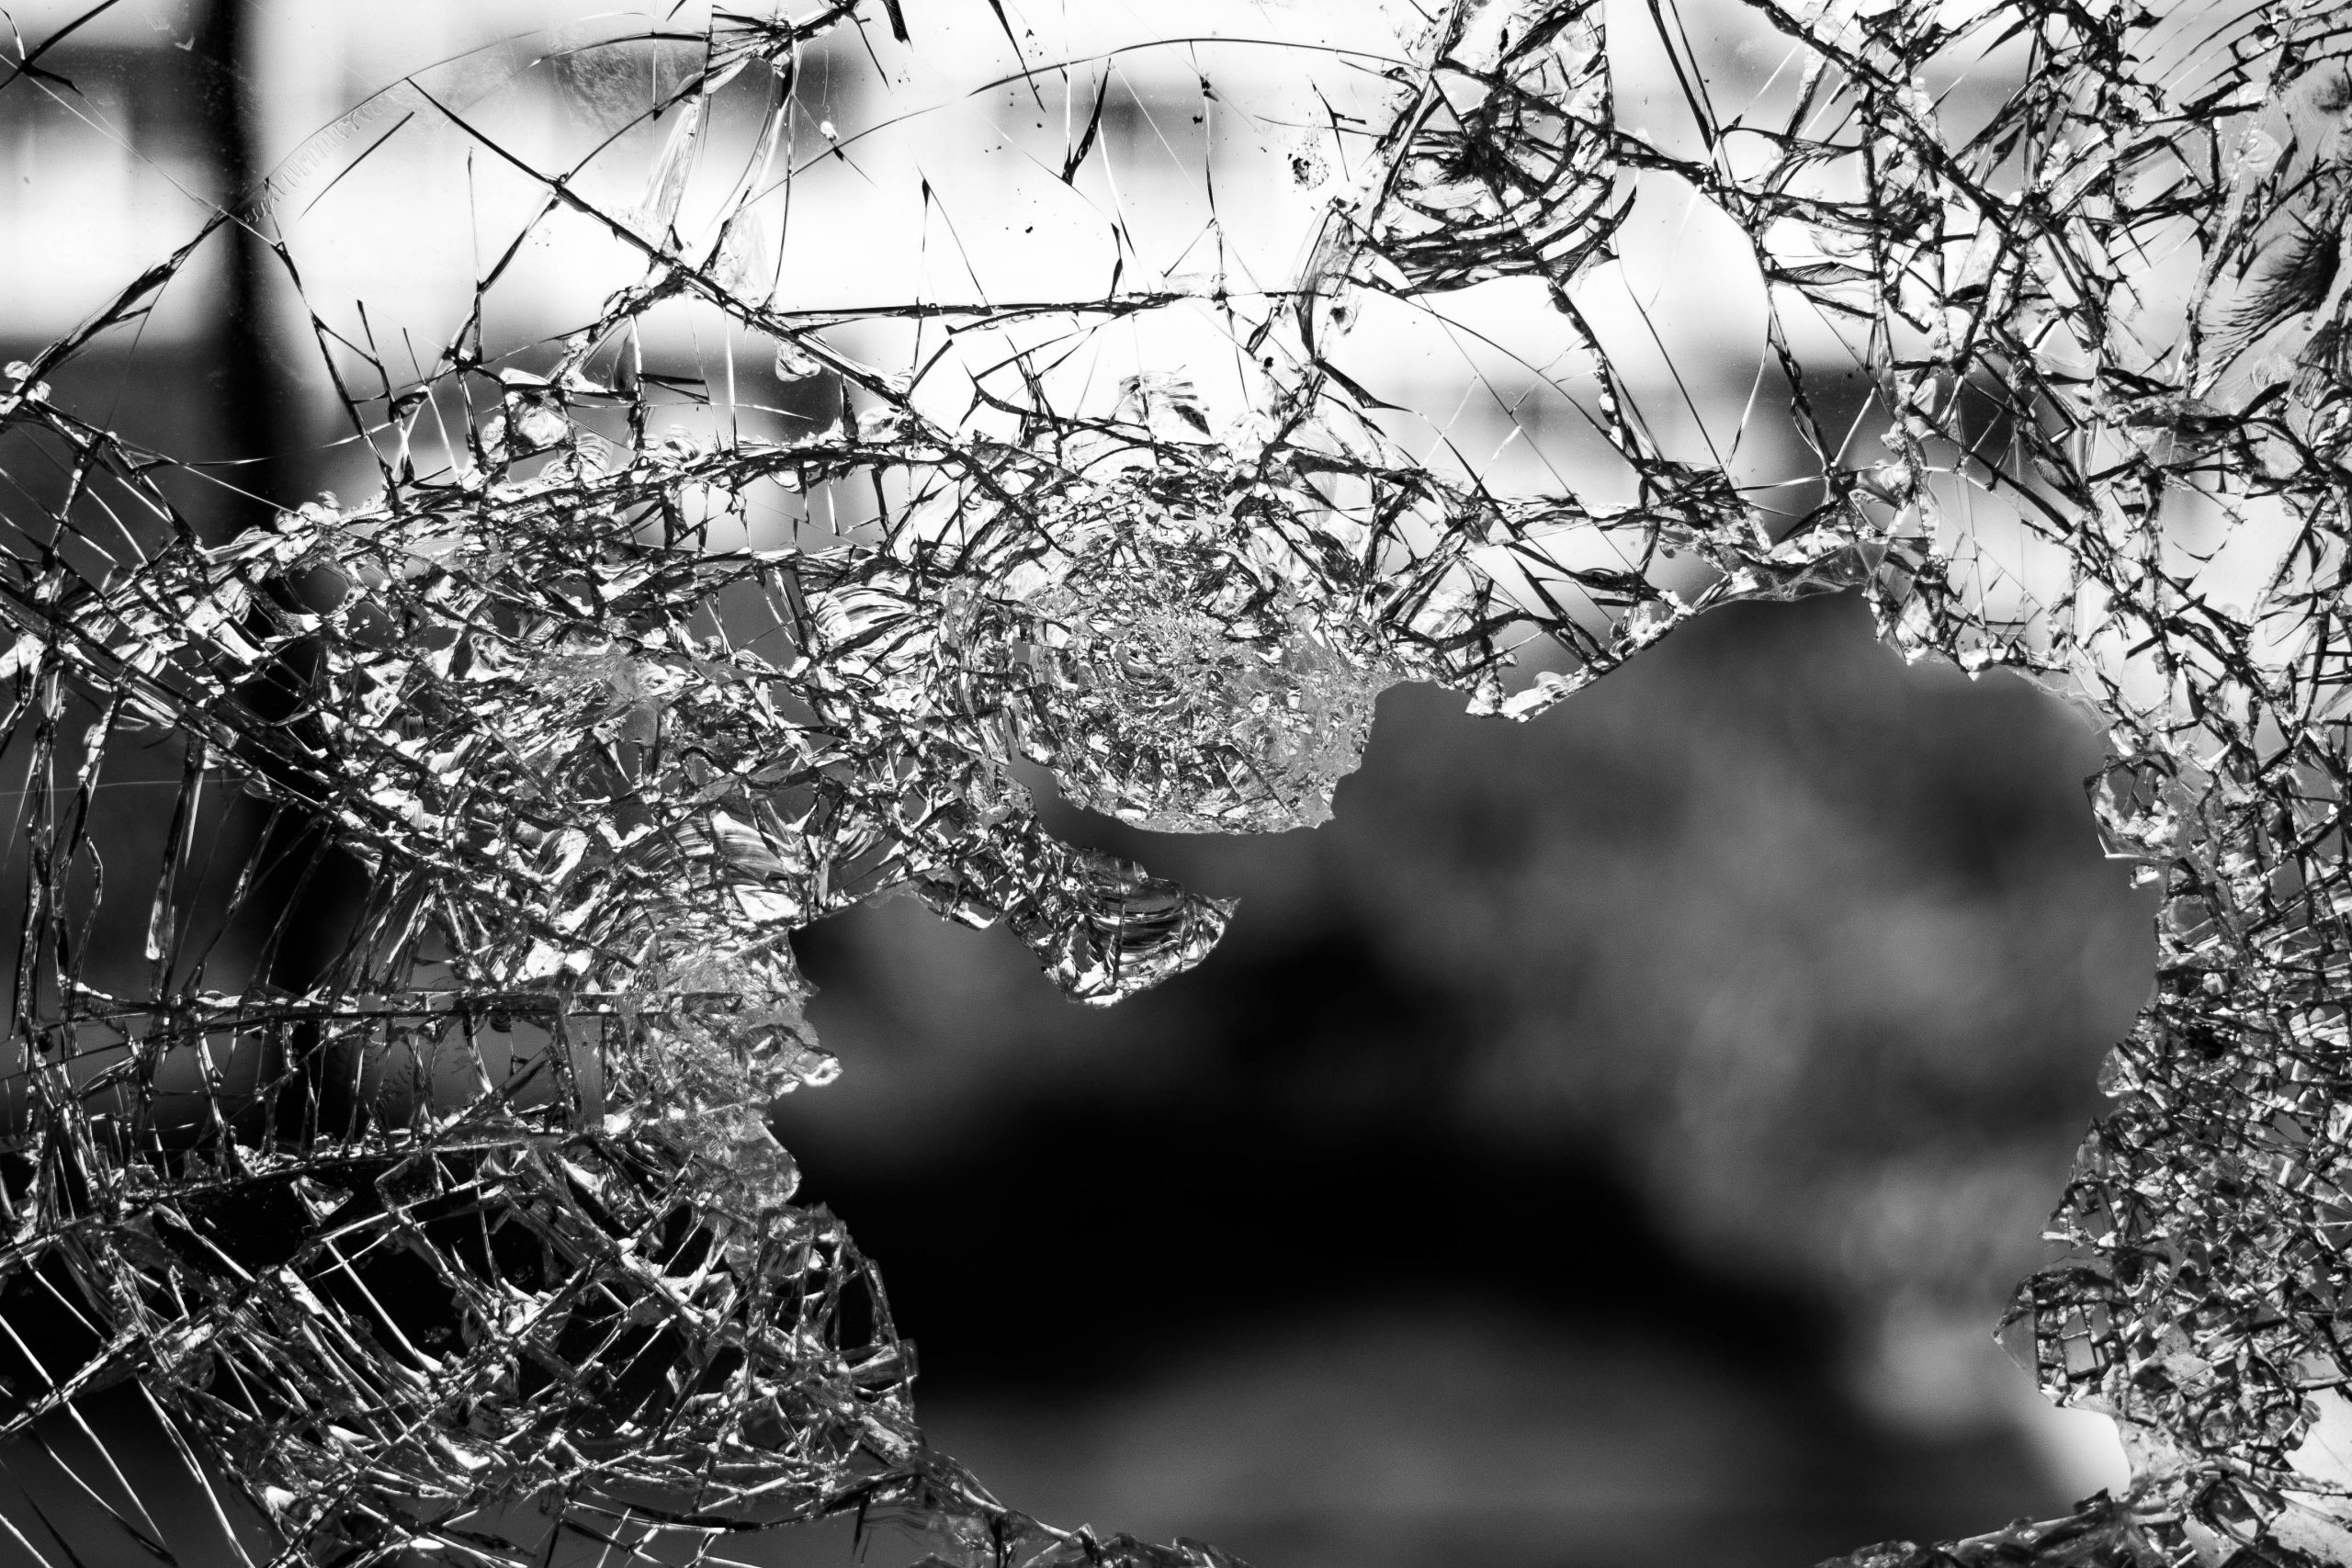 Family sues American Club over shattered glass door, teen injured by shards